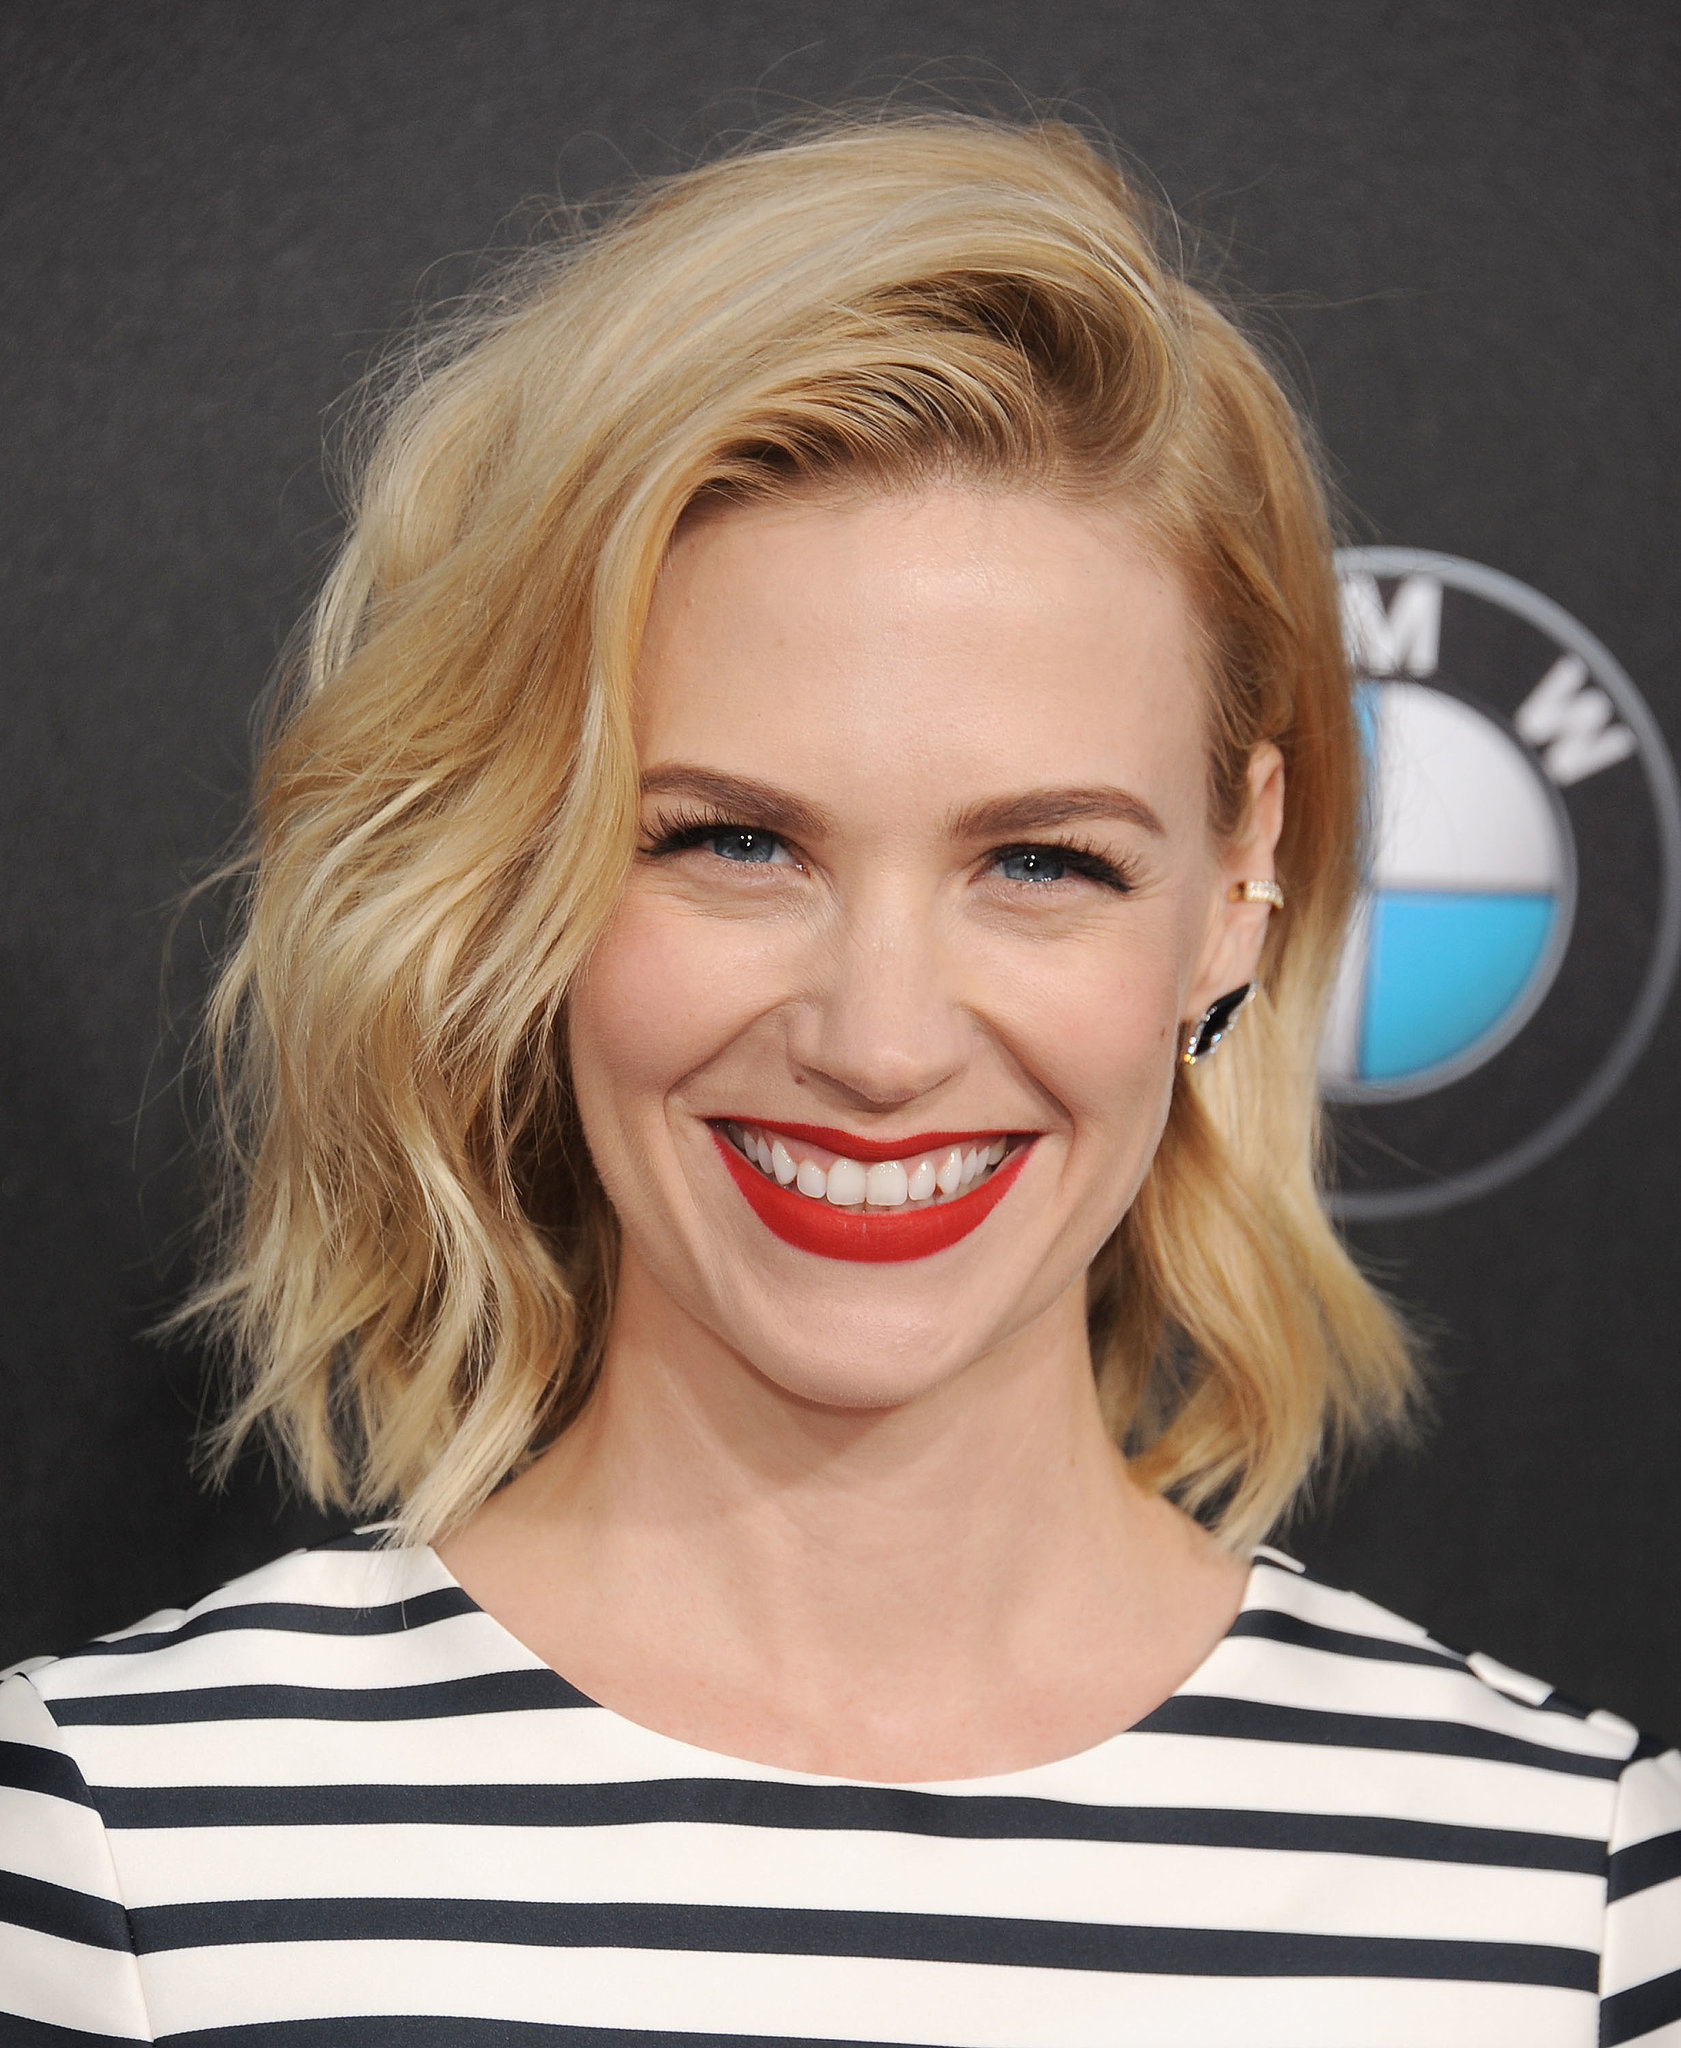 January Jones earned a  million dollar salary, leaving the net worth at 10 million in 2017